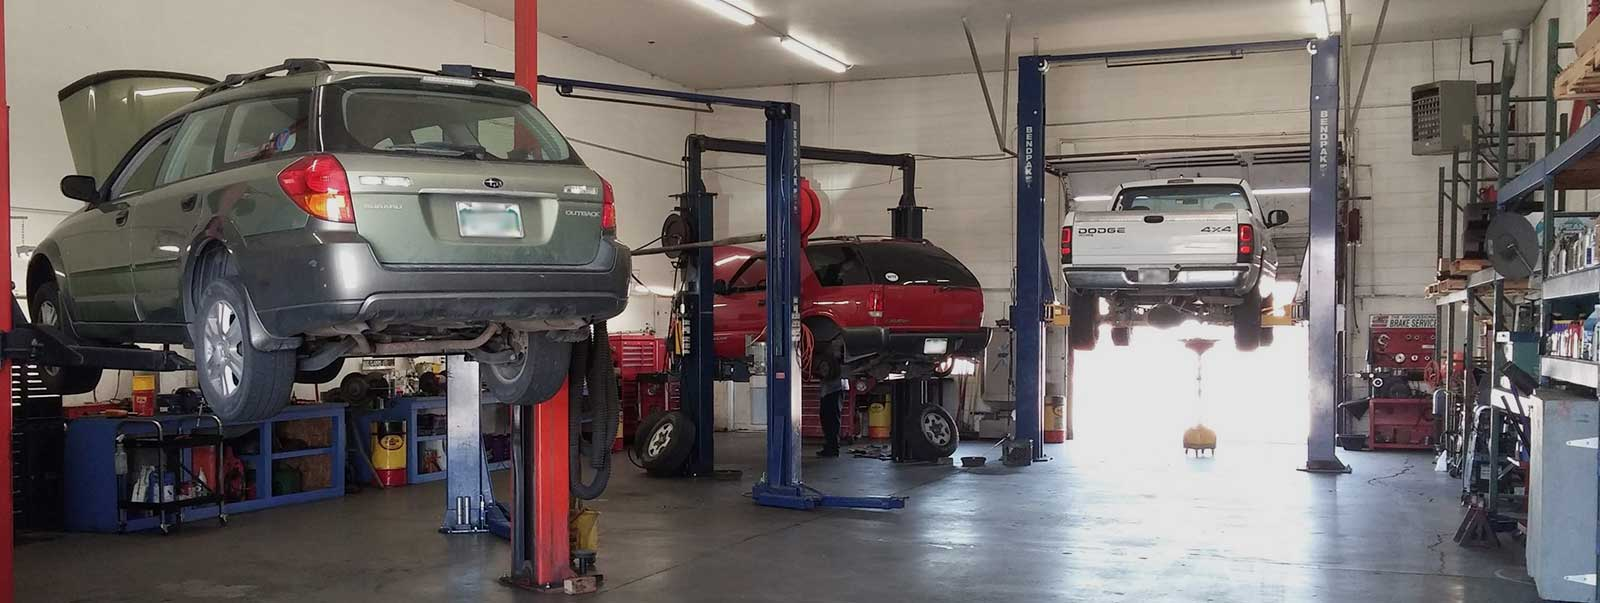 Simpson Brothers Garage - Fleet repair in Grand Junction